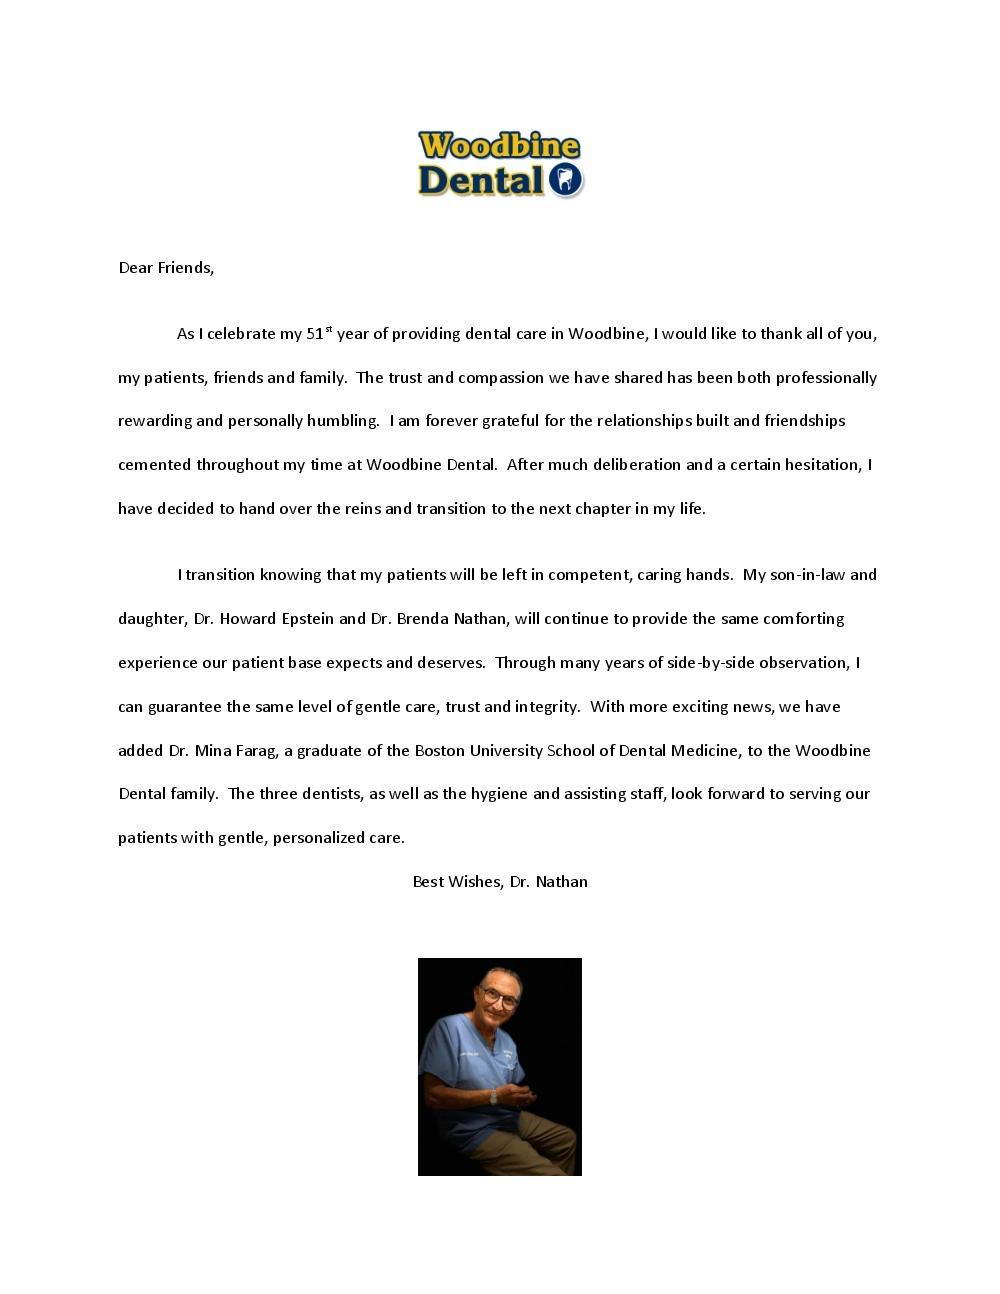 Doc retirement letter